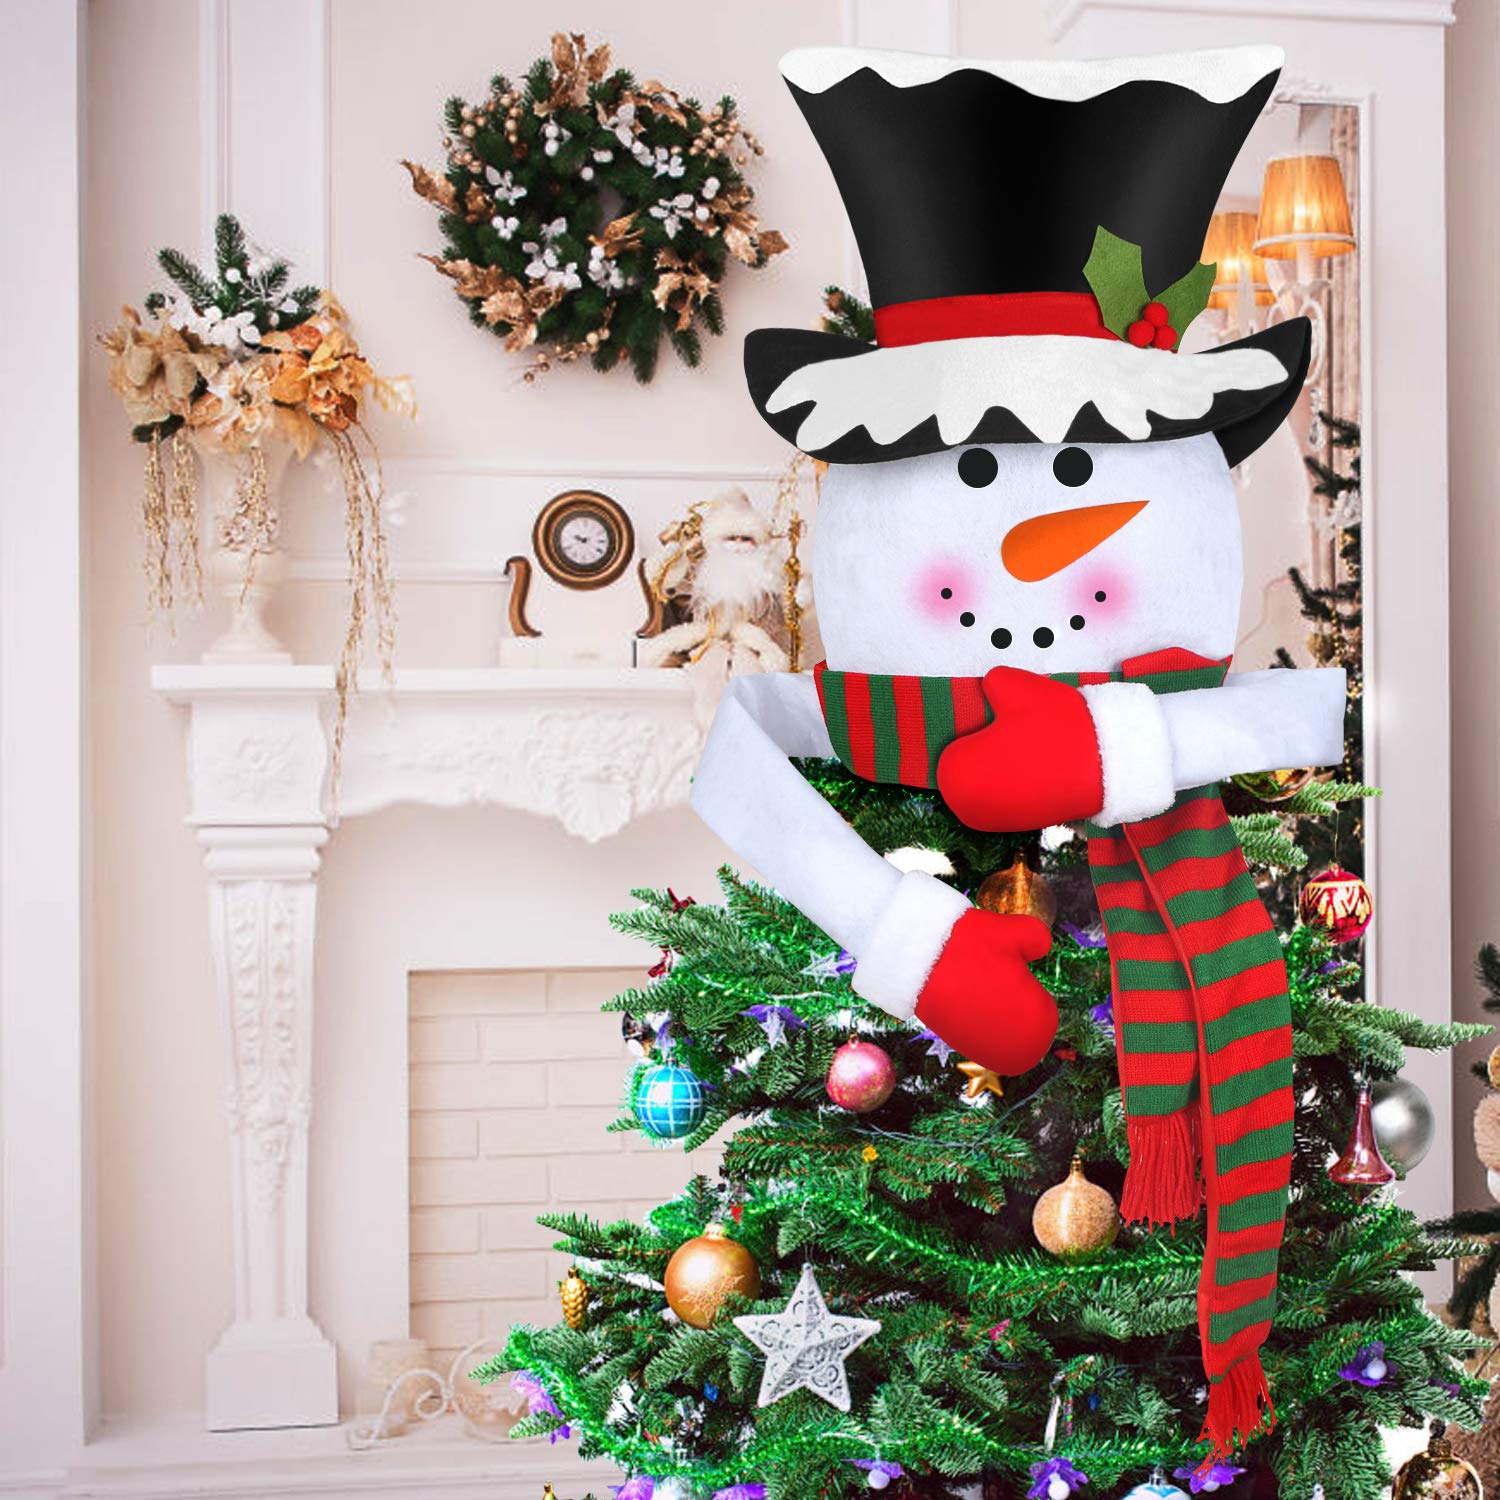 STYDDI Christmas Tree Topper Snowman Top Hat Scarf Mittens Hugger for Xmas Holiday Winter Party Home Decorations Ornaments